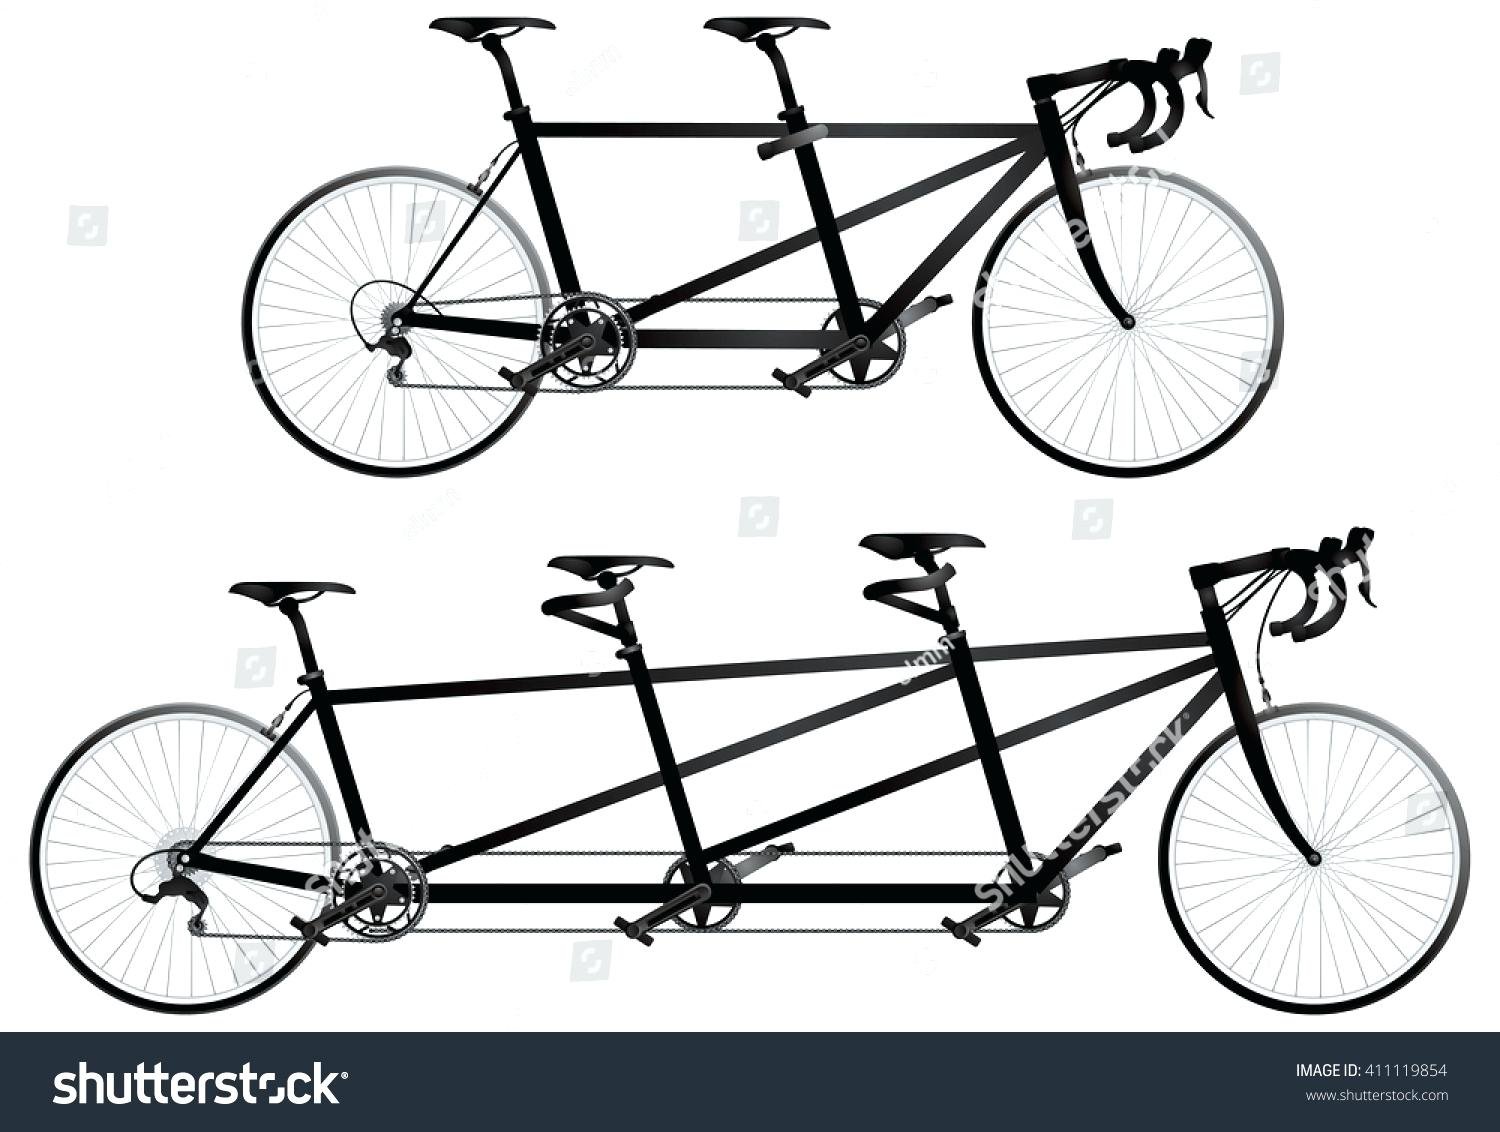 1500x1132 Tandem Bicycle Art Tandem Bicycle Wall Art Classy Clutter Elegant